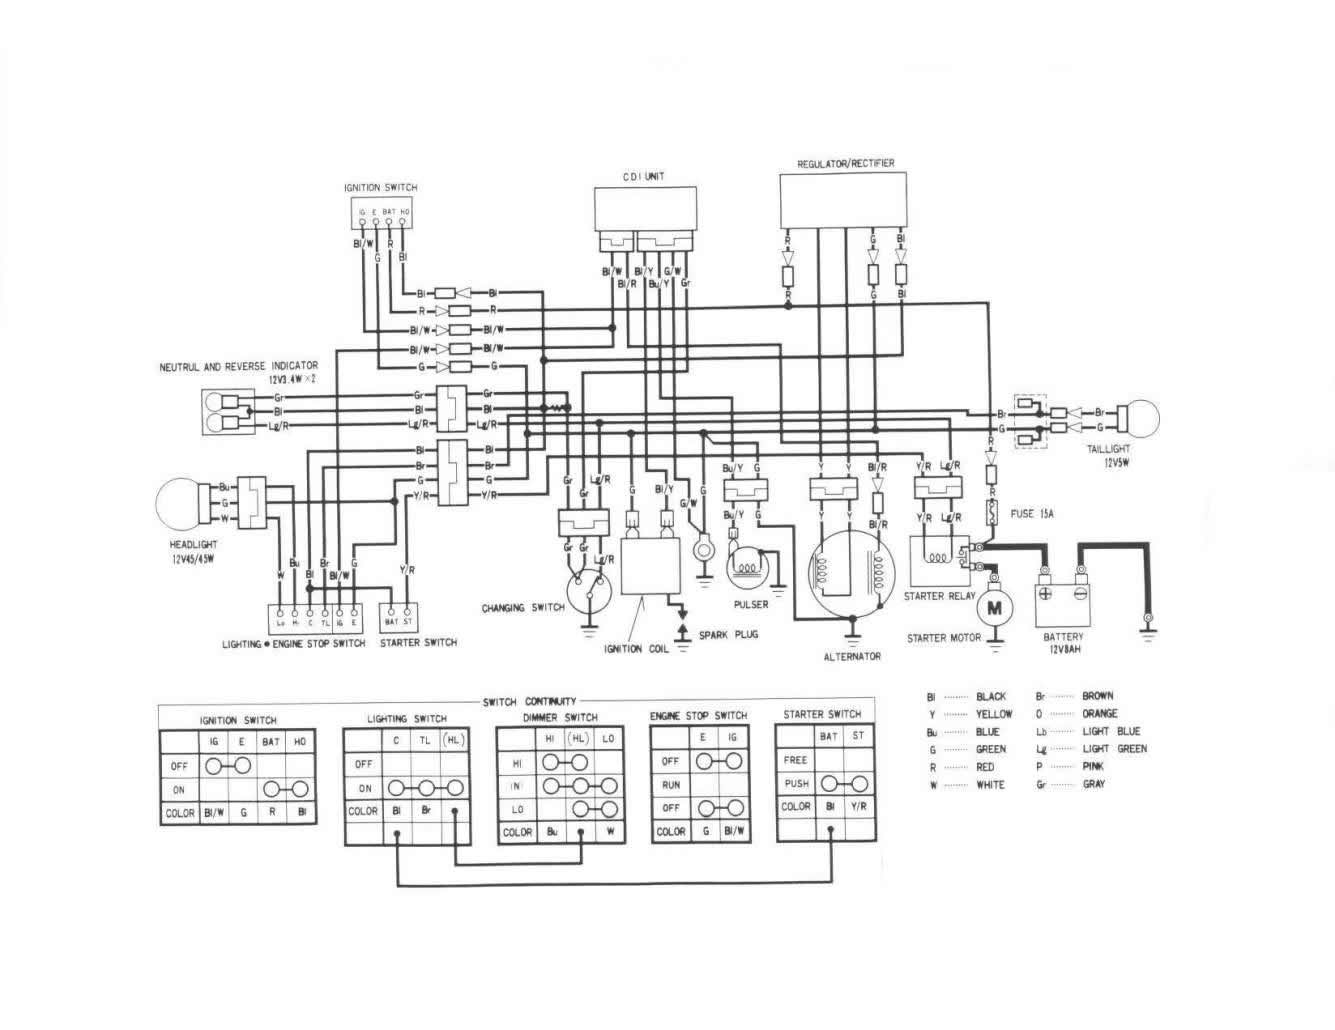 1997 Honda Accord Fuel System Wiring Diagram Library 1984 Atc200m Schematic Diagrams